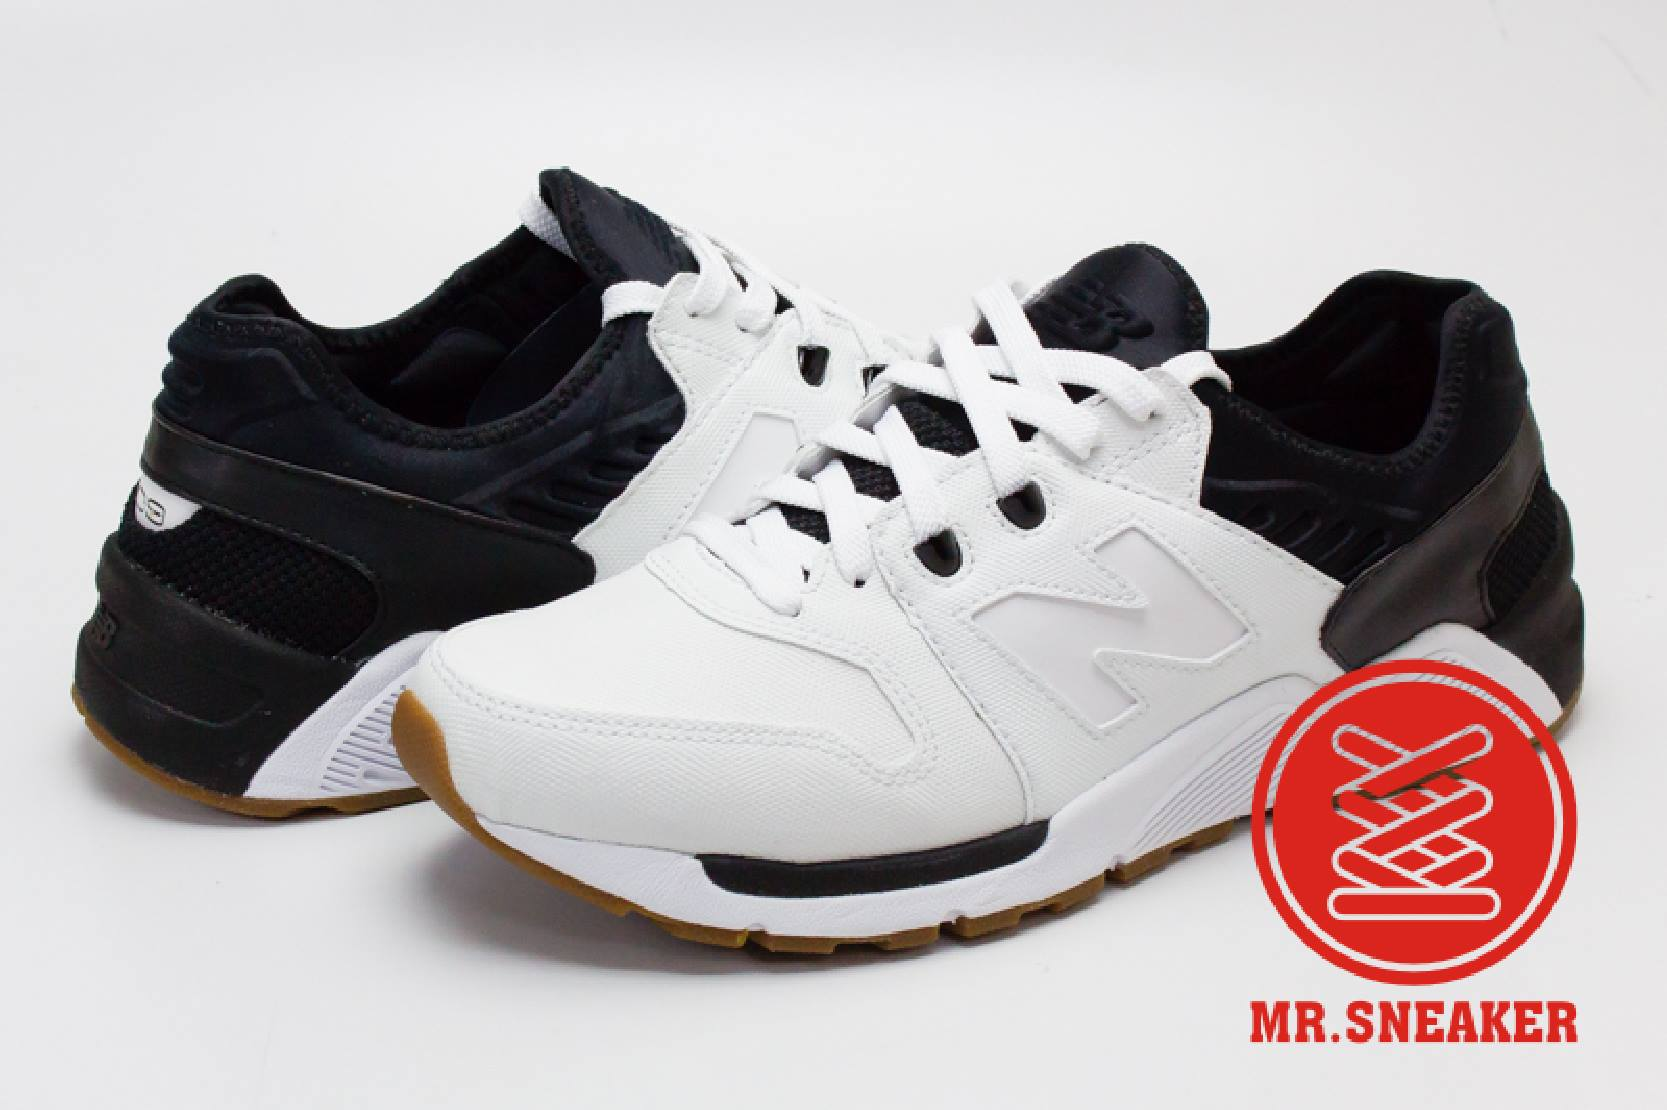 ☆Mr.Sneaker☆ New Balance ML009 UTB Reinvent 997 998 999 襪套式 Rapid Rebound 避震 似 武士鞋 白色 男女段